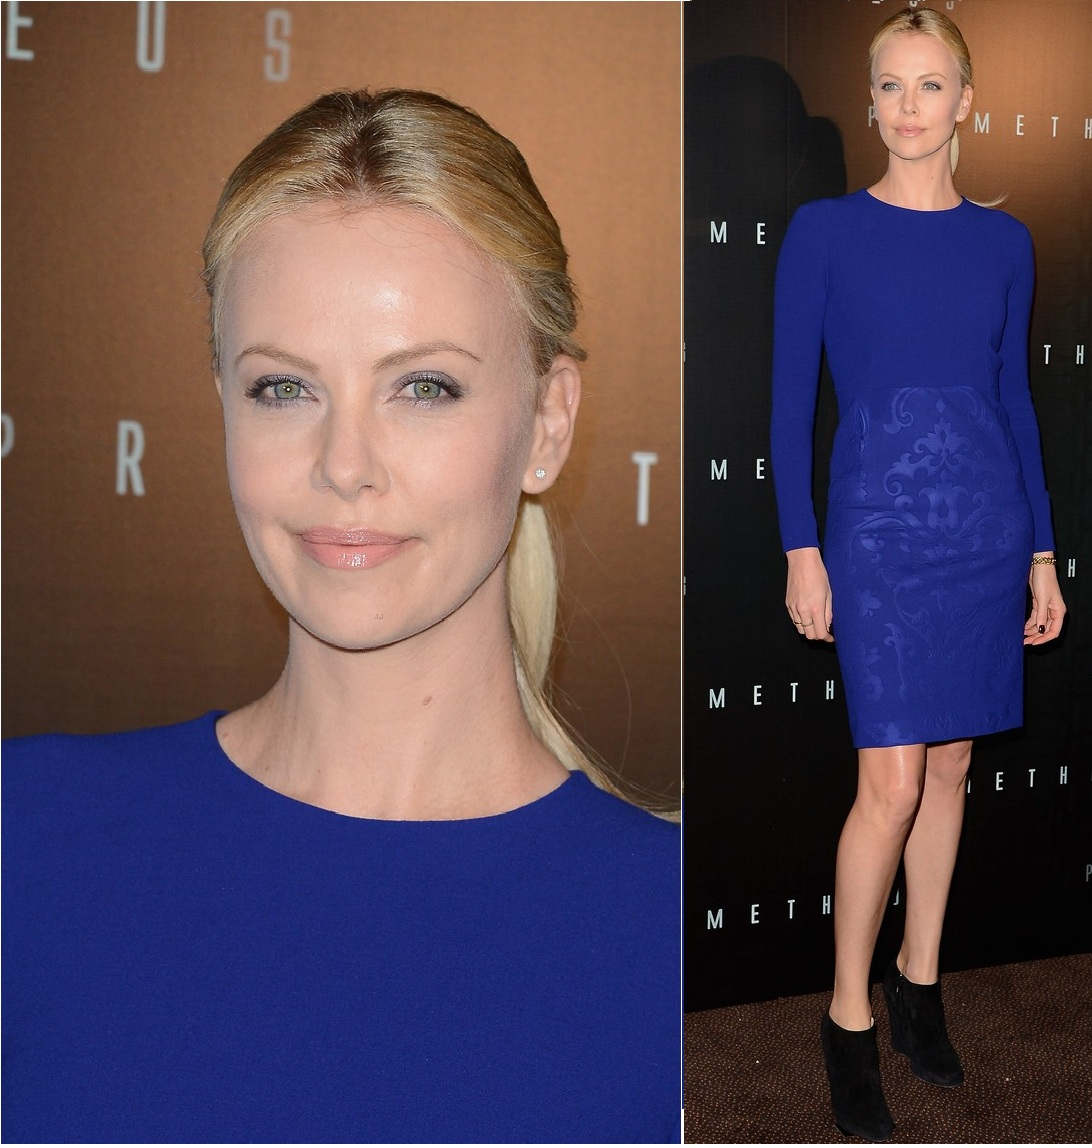 http://4.bp.blogspot.com/-1avzEArW3GI/T4WAWBMOPdI/AAAAAAAAG6c/_qjvGFVfO-E/s1600/charlize-theron+in+stella+mccartney+fall+2012-prometheus+paris+photocall.jpg